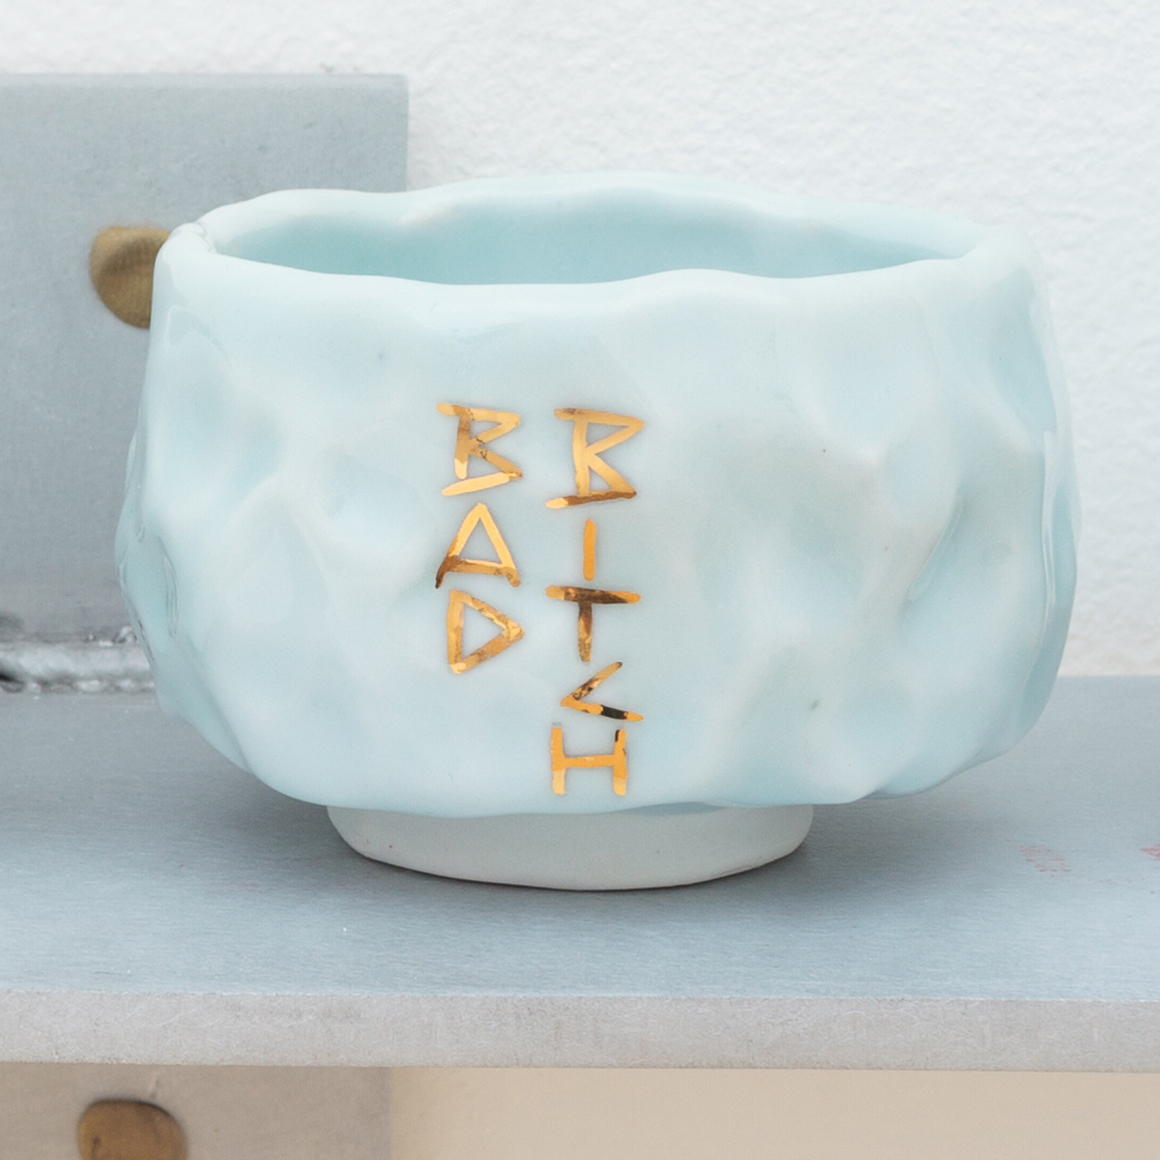 "<p><span class=""name"">Patrice Renee Washington</span><br><em>Bad Bitch Cup (2)</em><span class='media'>Glazed porcelain, gold luster, aluminum, Sculpey clay</span>2 x 2.7625 x 2.7625in<br>2016<br><a class='inquire' href='mailto:info@gildargallery.com?subject=Artwork Inquiry PWAS0003&body=I am interested in finding out more about Bad Bitch Cup (2) by Patrice Renee Washington'>Inquire</a></p>"